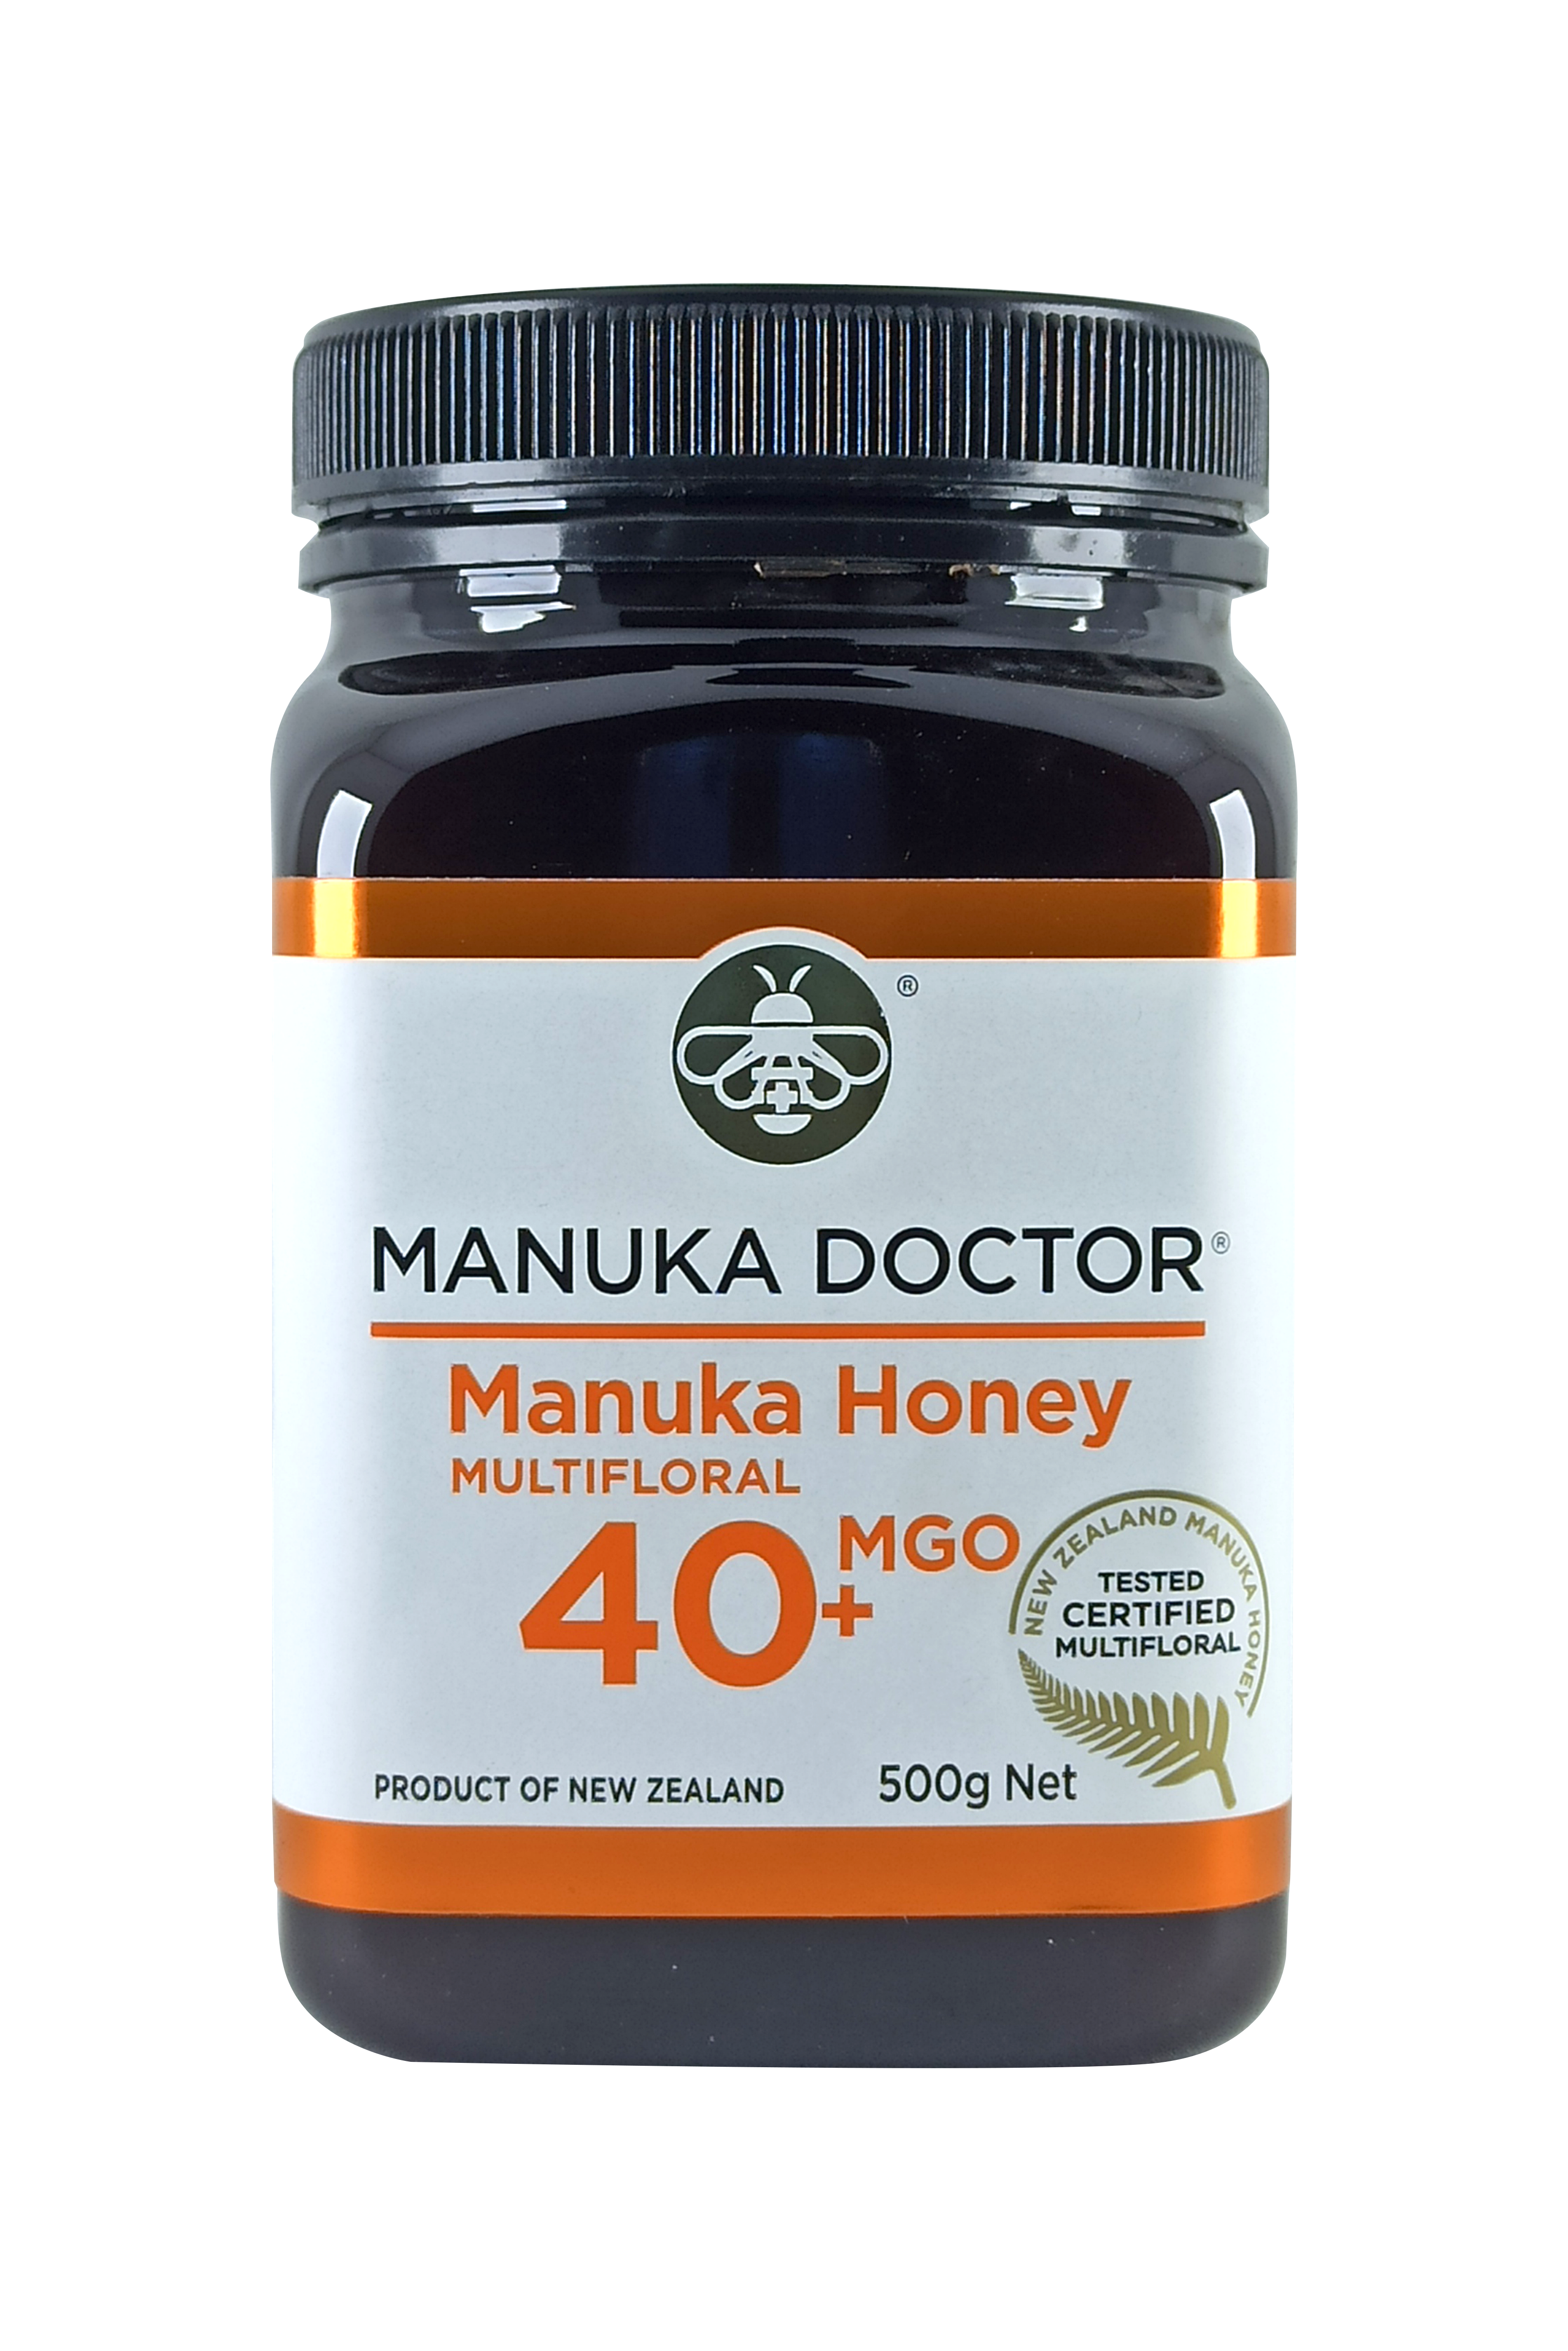 Manuka Doctor MGO 40+ Manuka Honey Multifloral 500gr